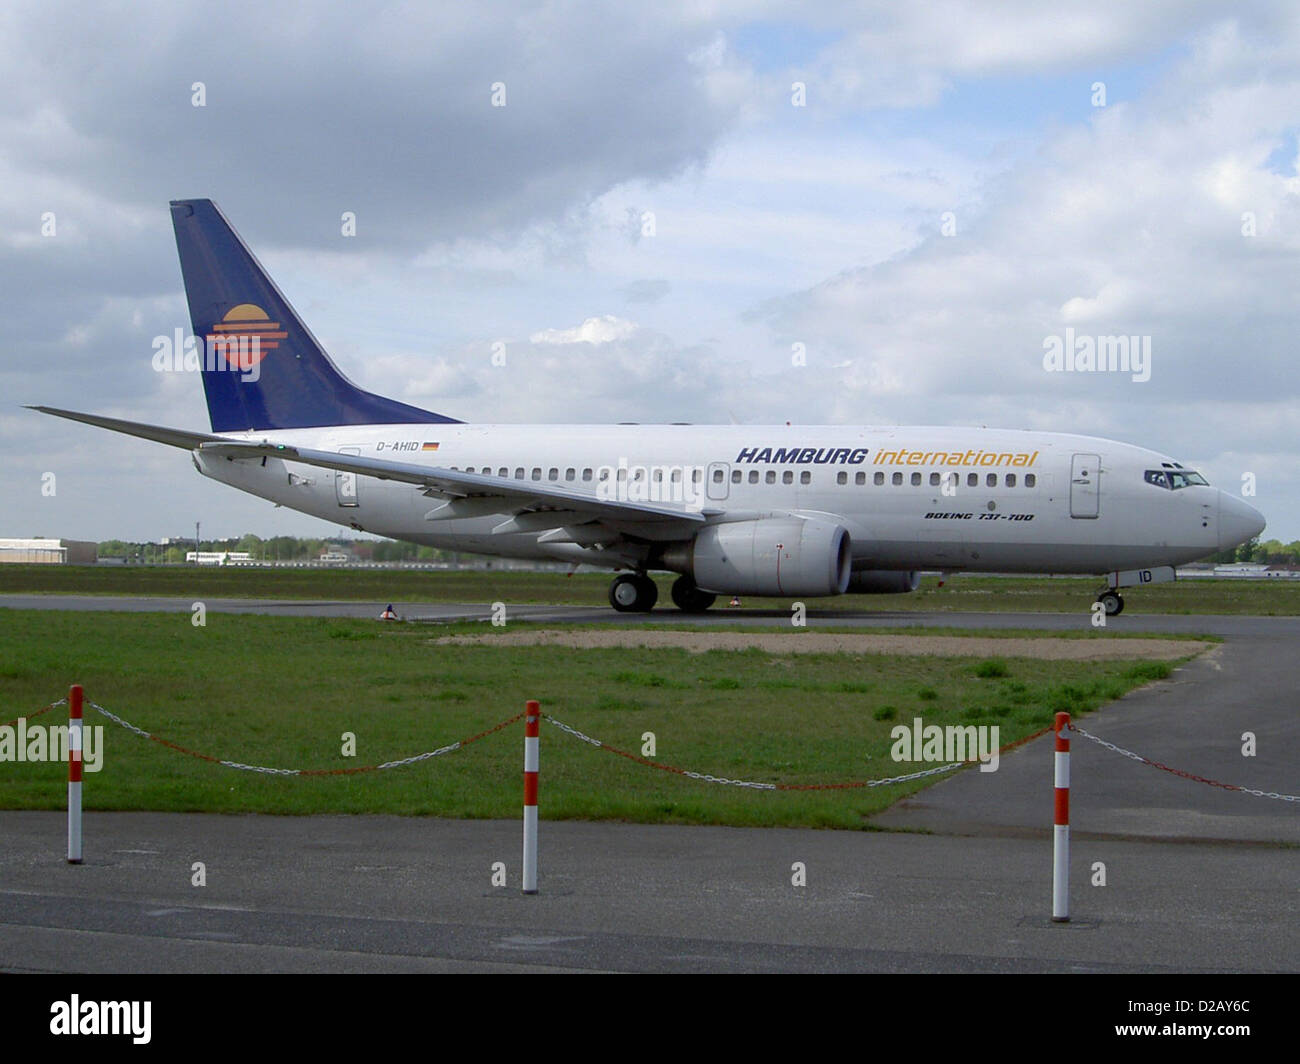 t D-AHID (Boeing 737-73S) from Hamburg International Airlines - Stock Image